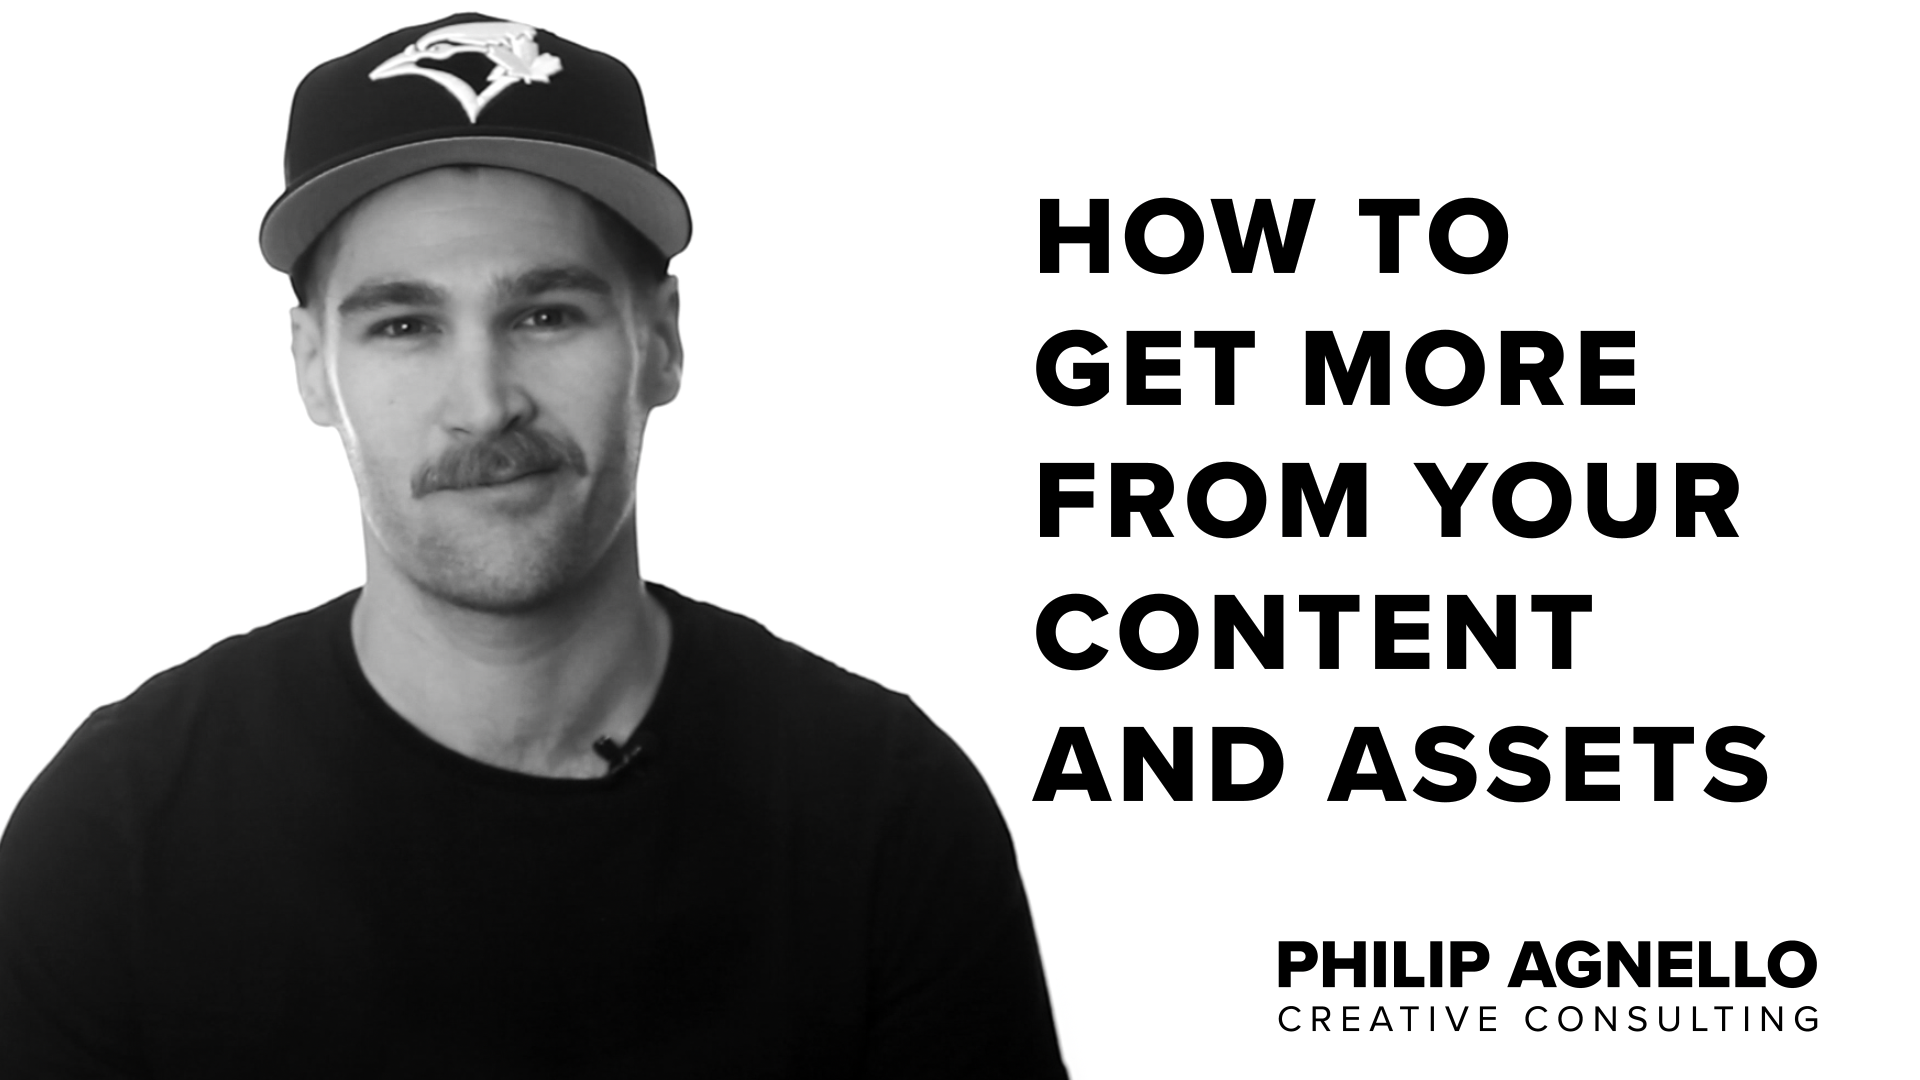 Title: How To Get More From Your Content And Assets